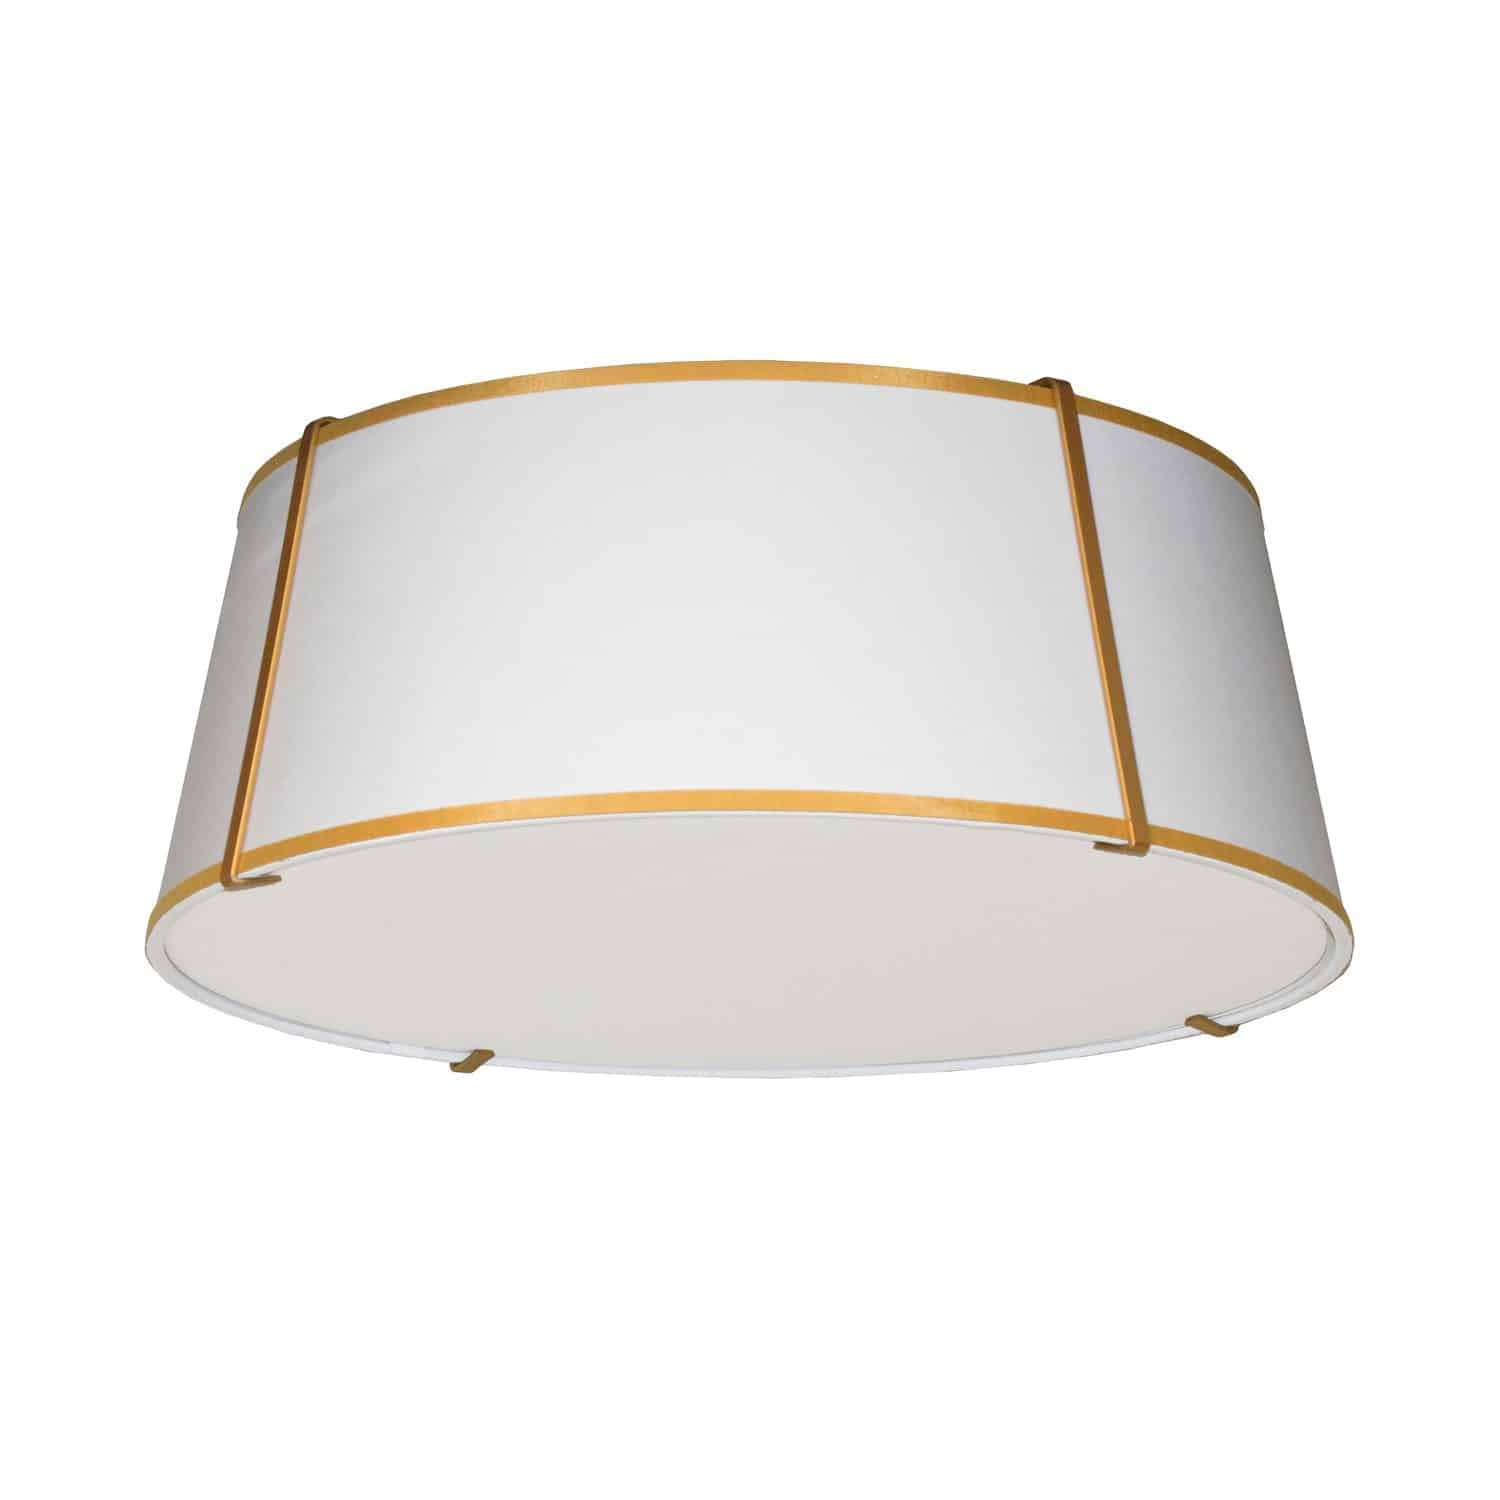 4LT Trapezoid Flushmount Gold/WH Shade w/ 790 Diff